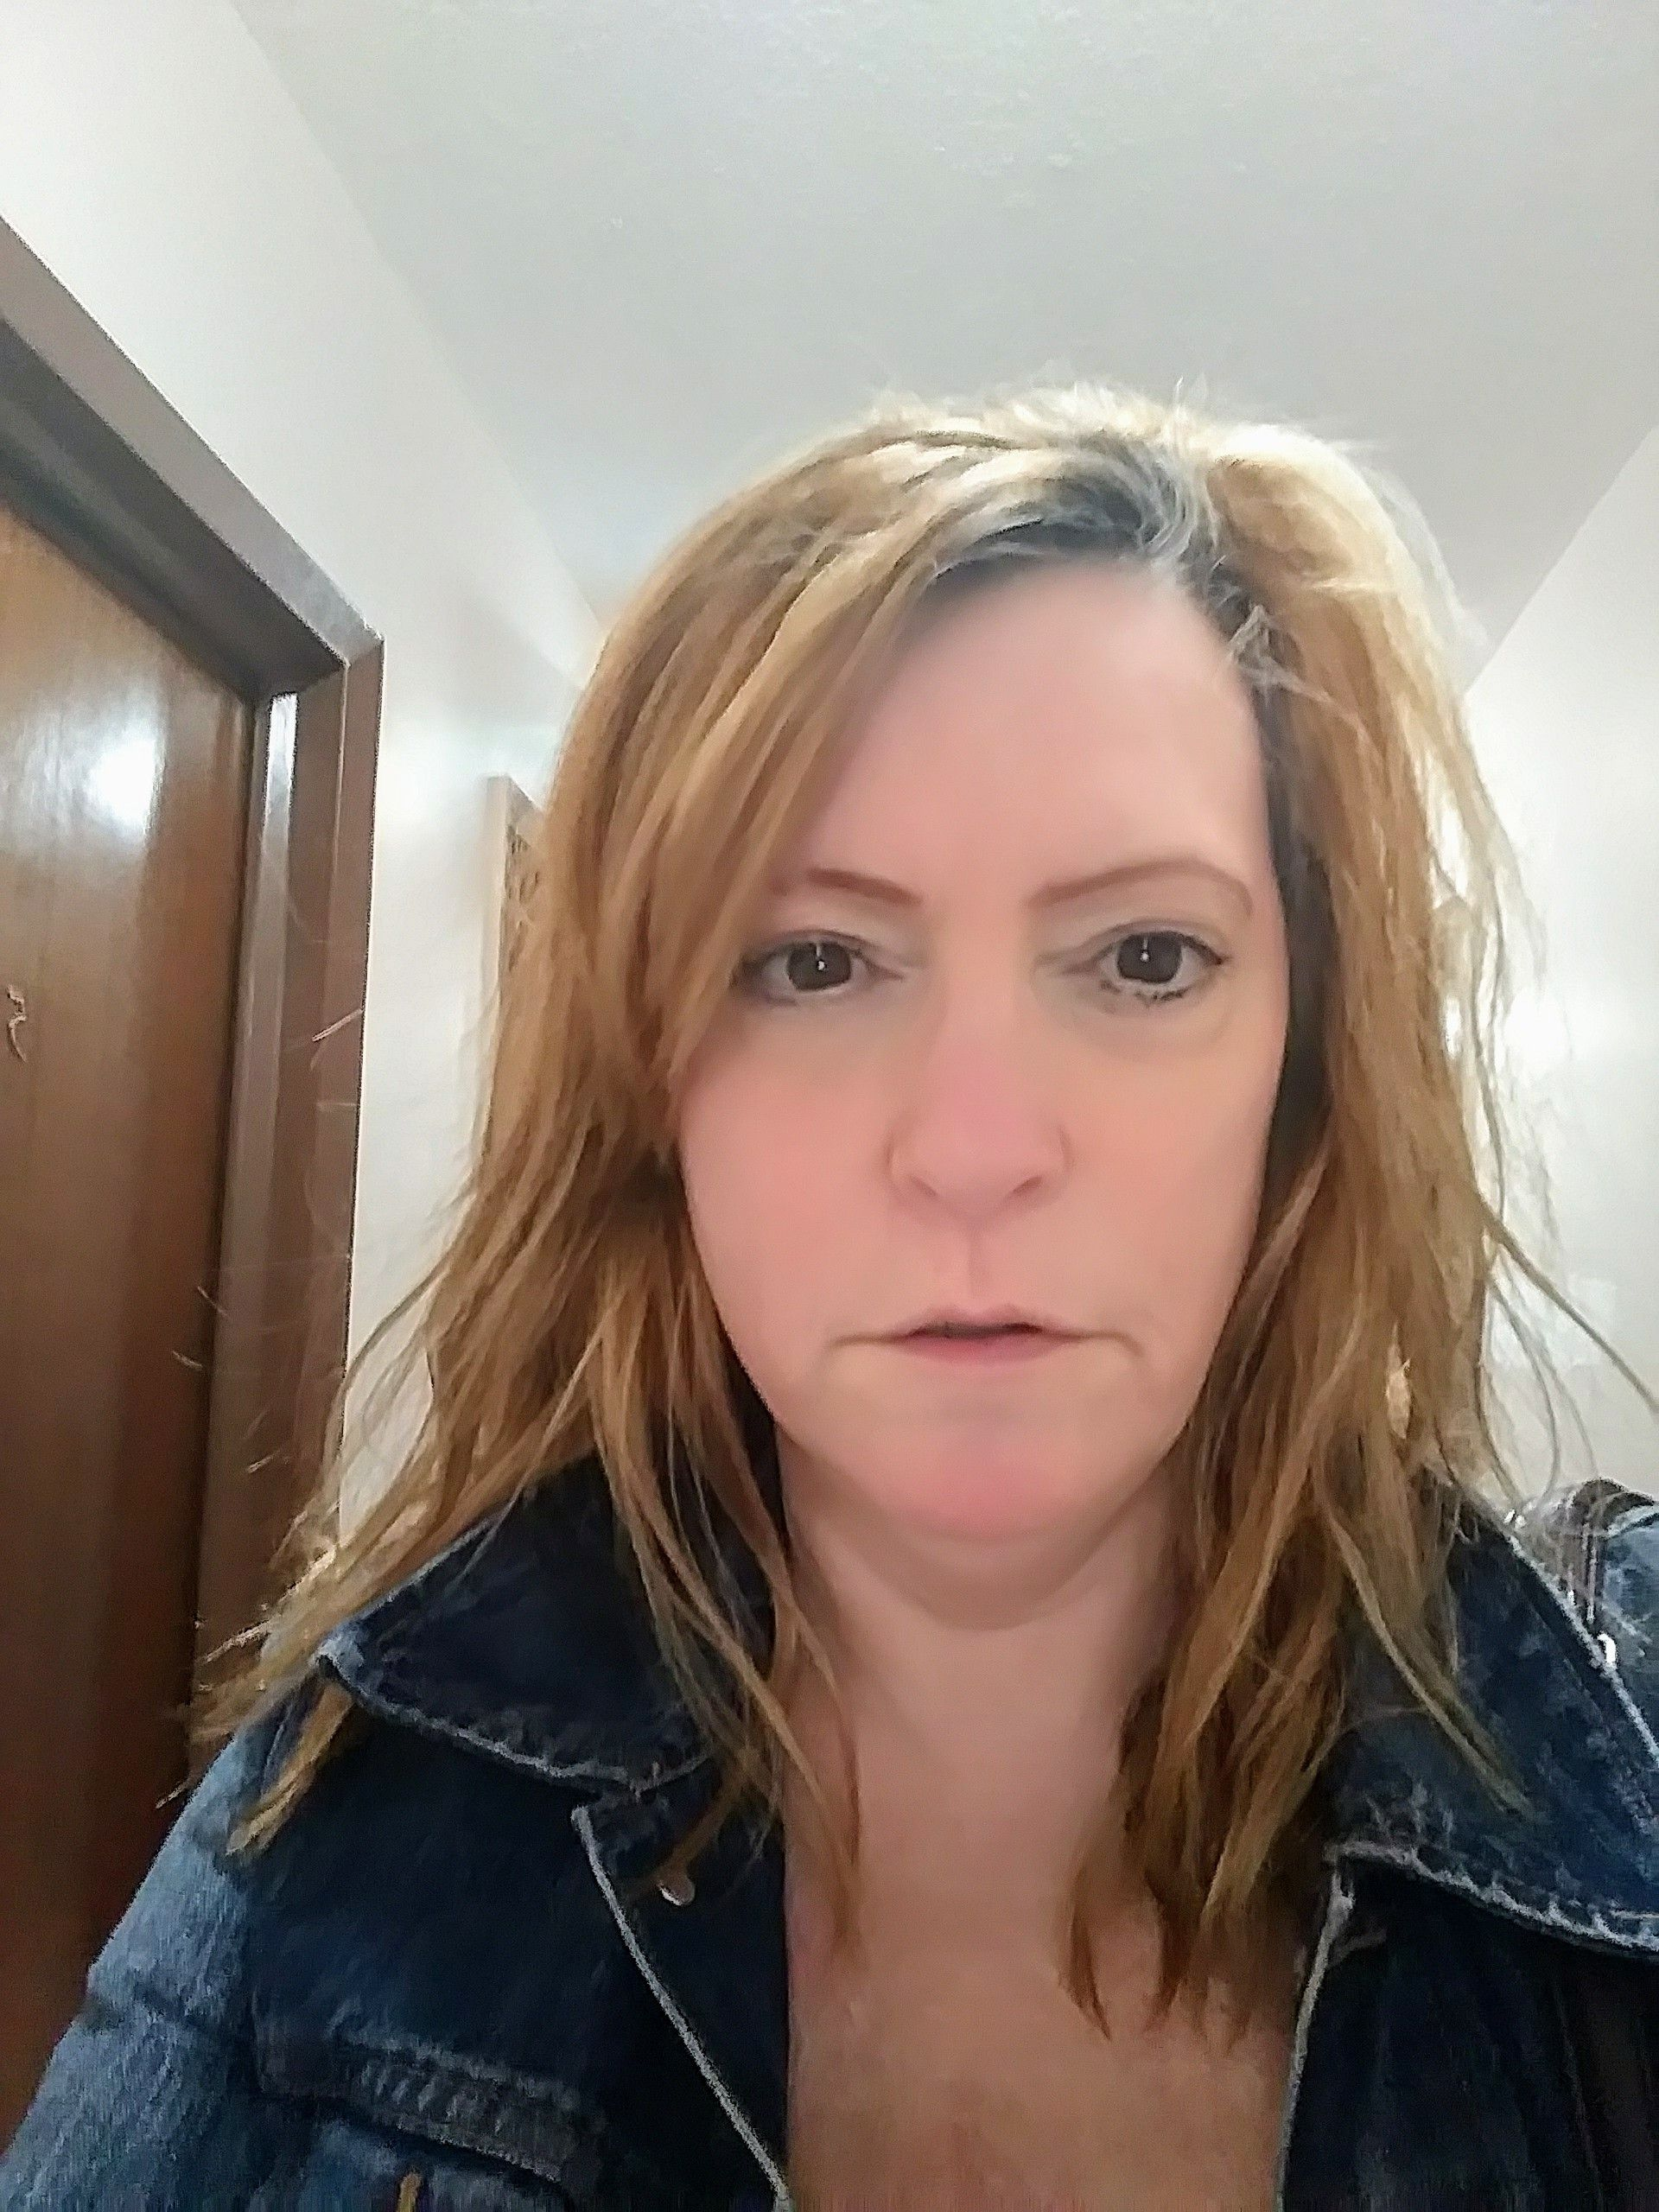 50 plus dating montreal